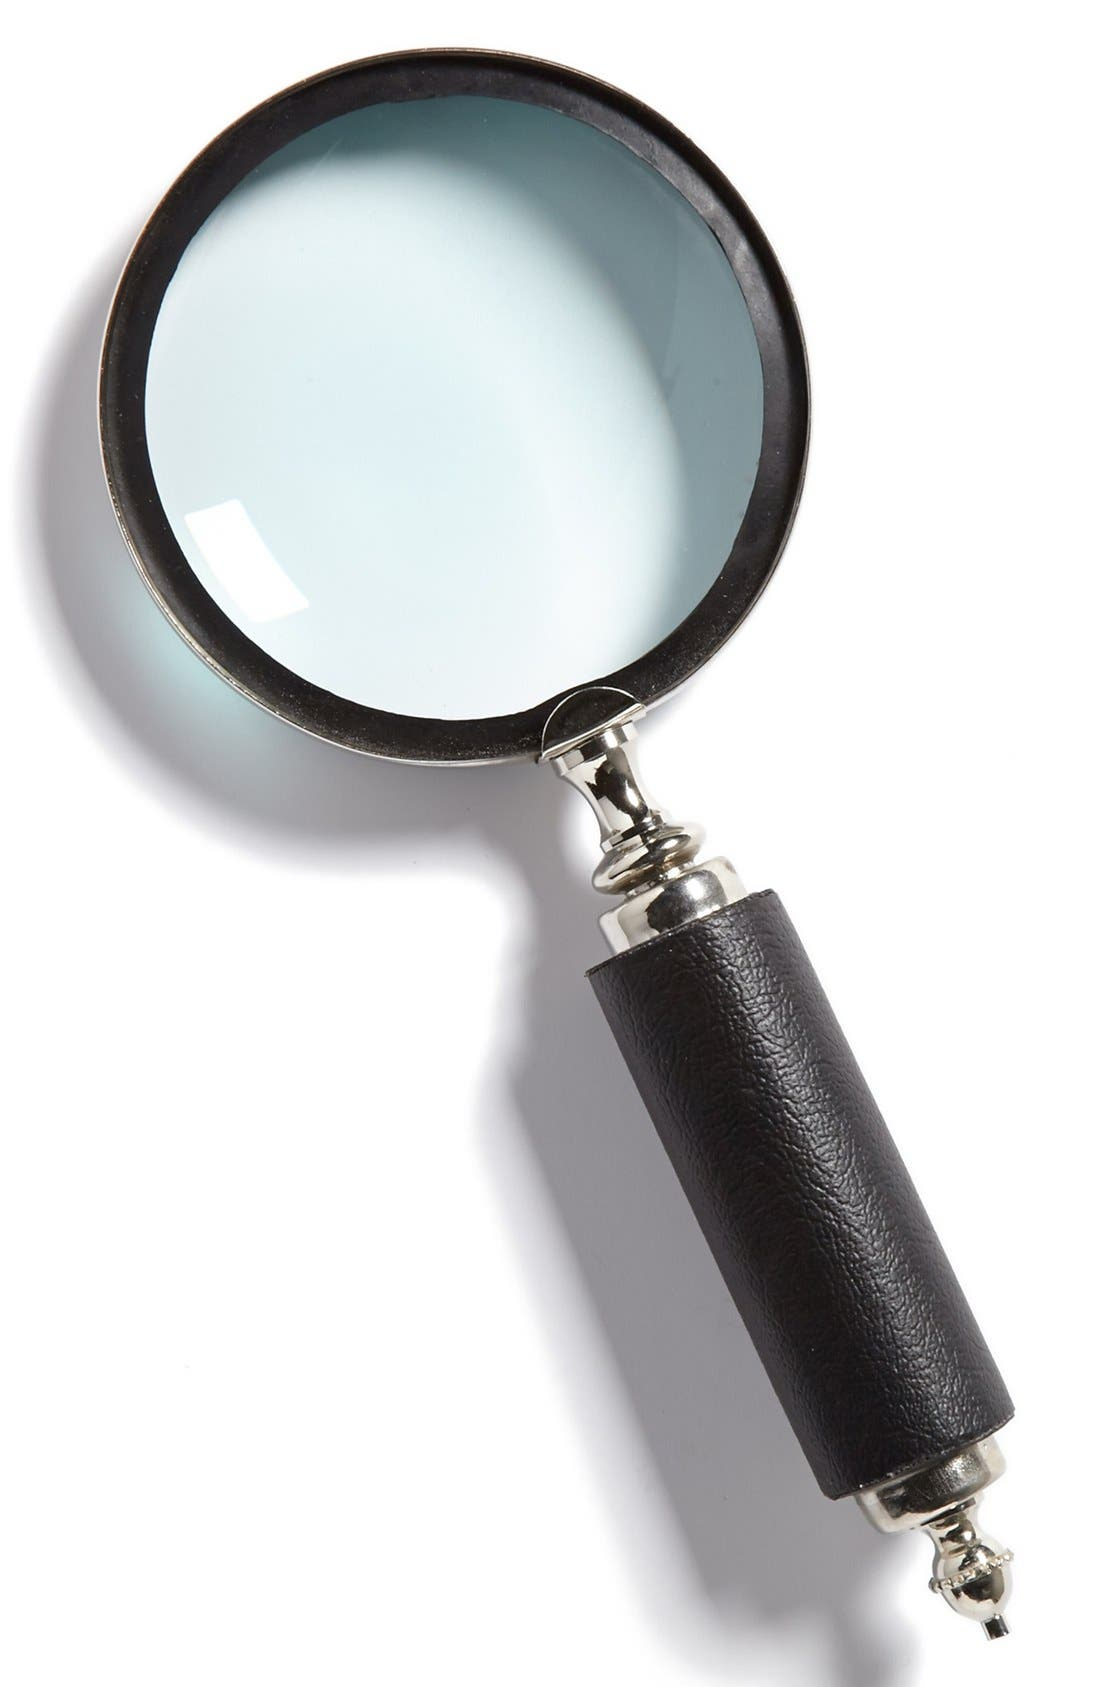 Alternate Image 1 Selected - Import Collection Blackened Horn Handle Magnifying Glass